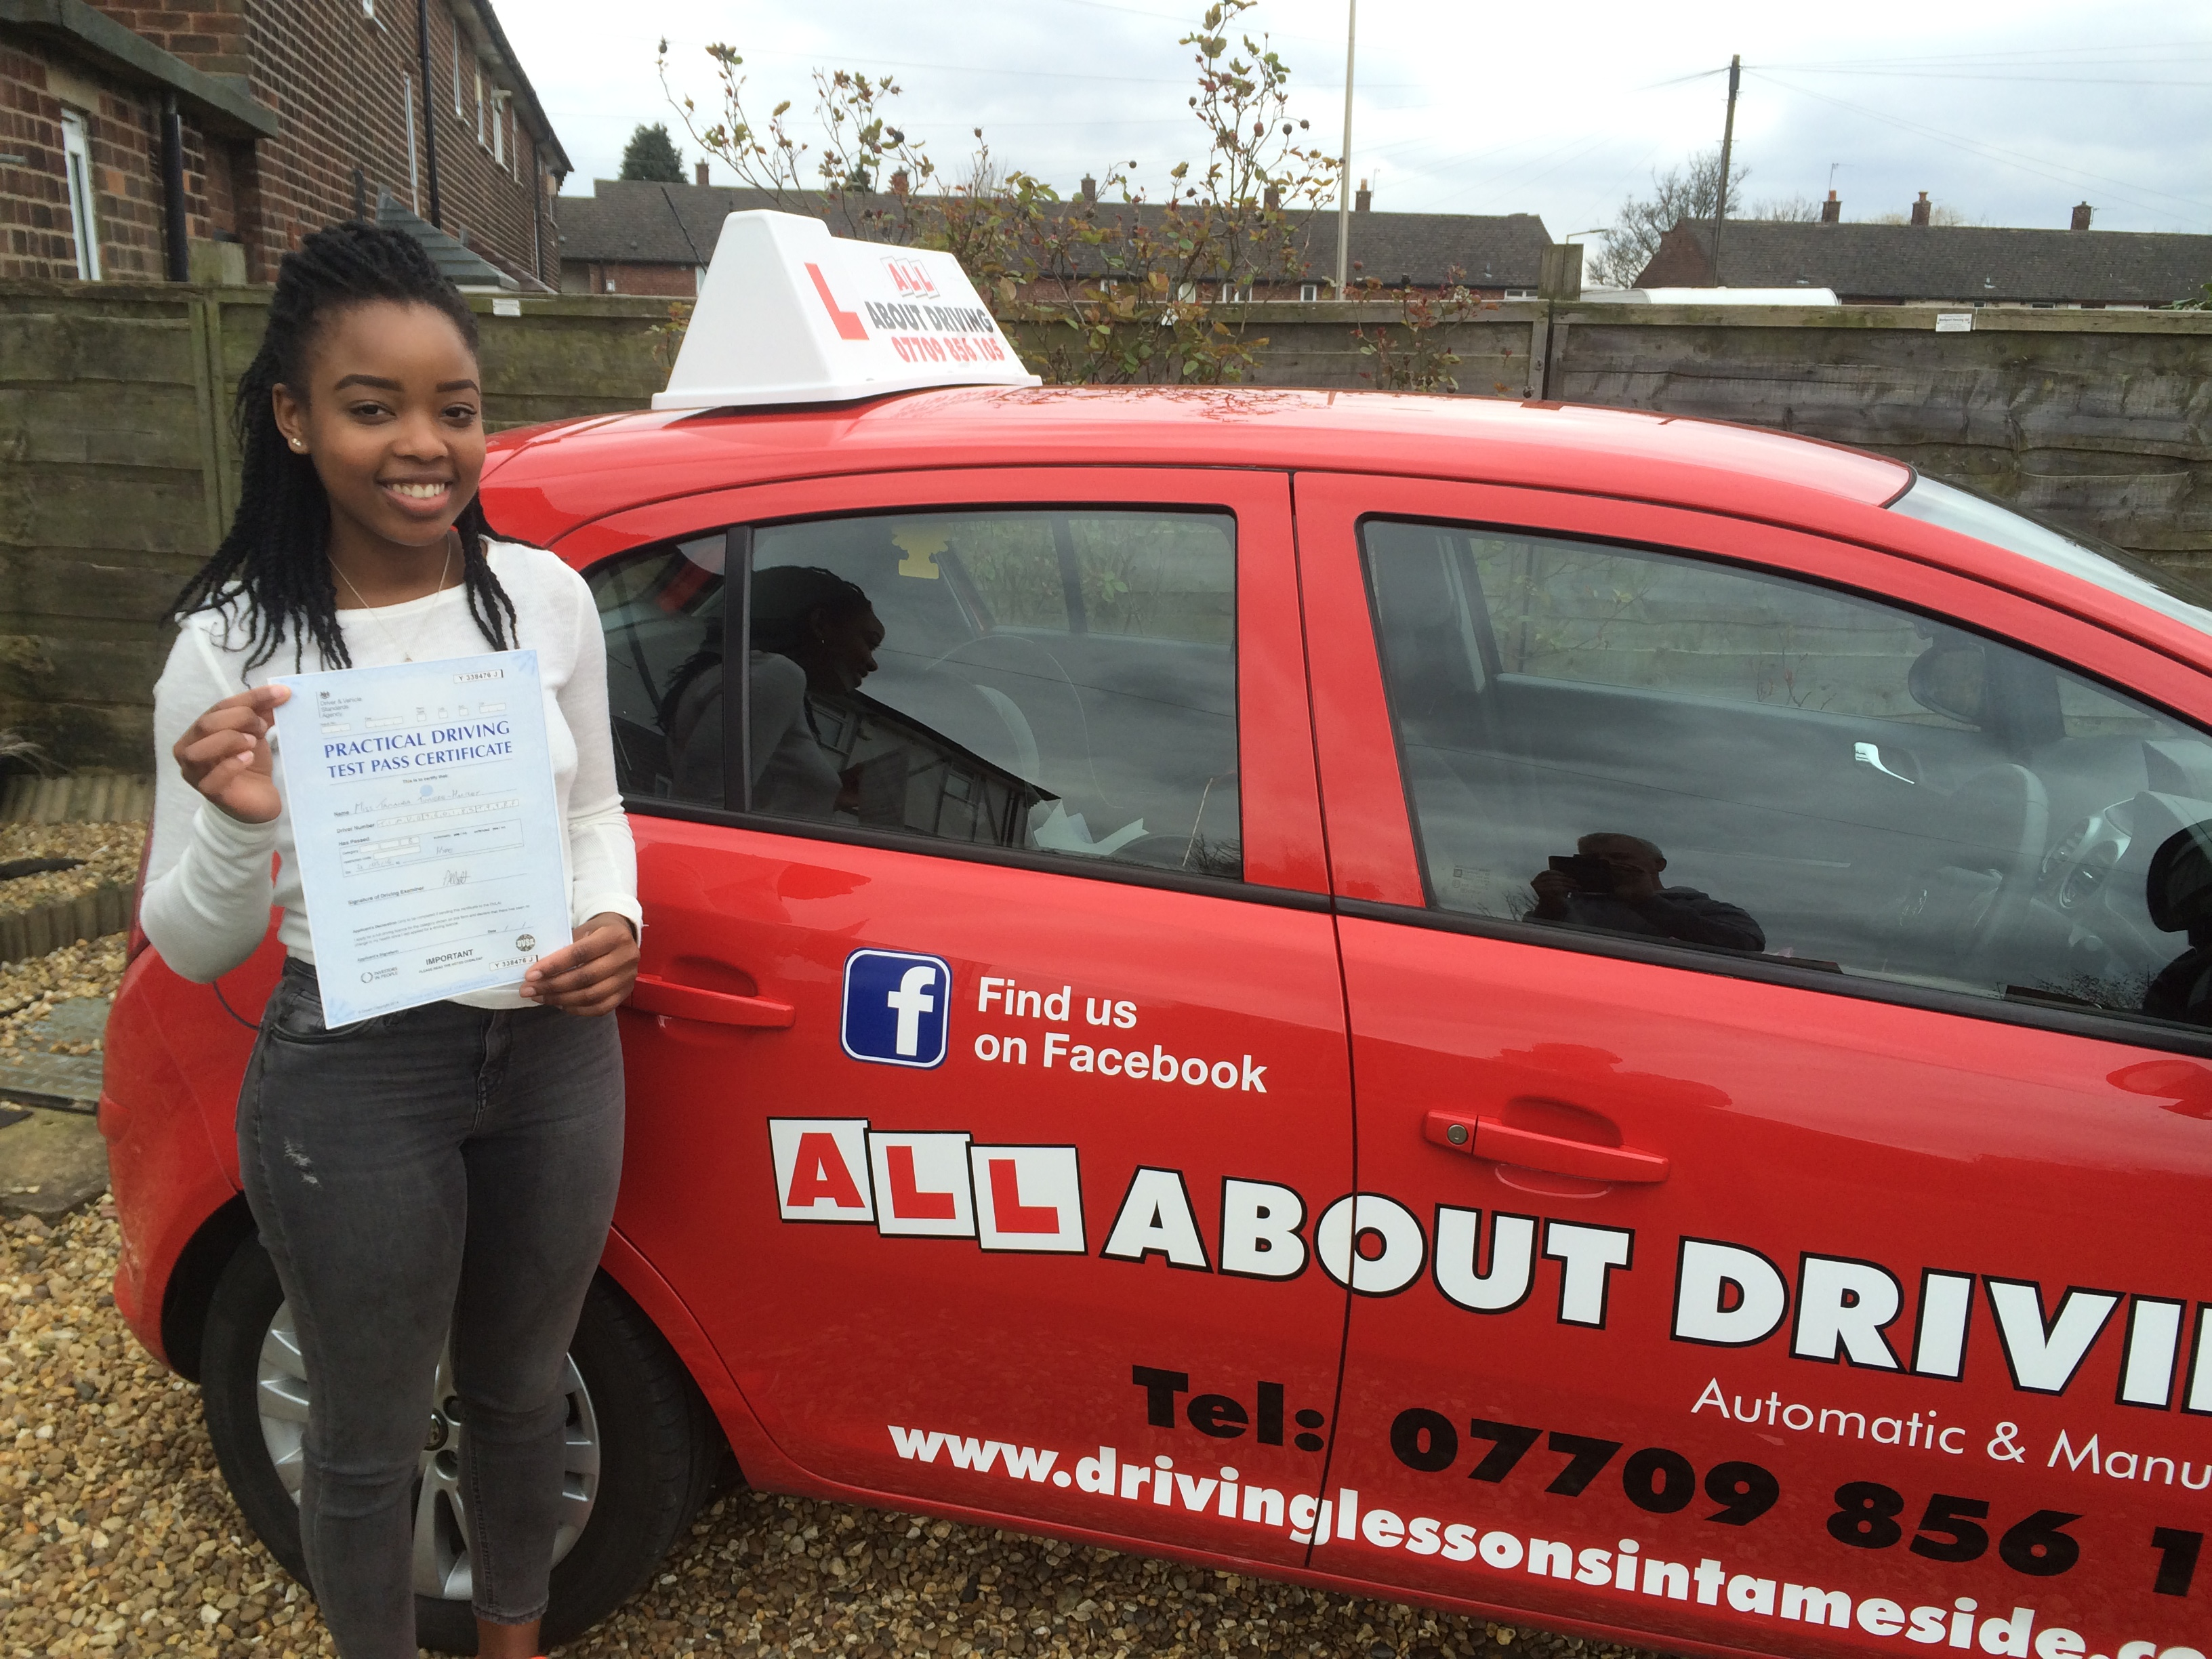 driving lessons in tameside